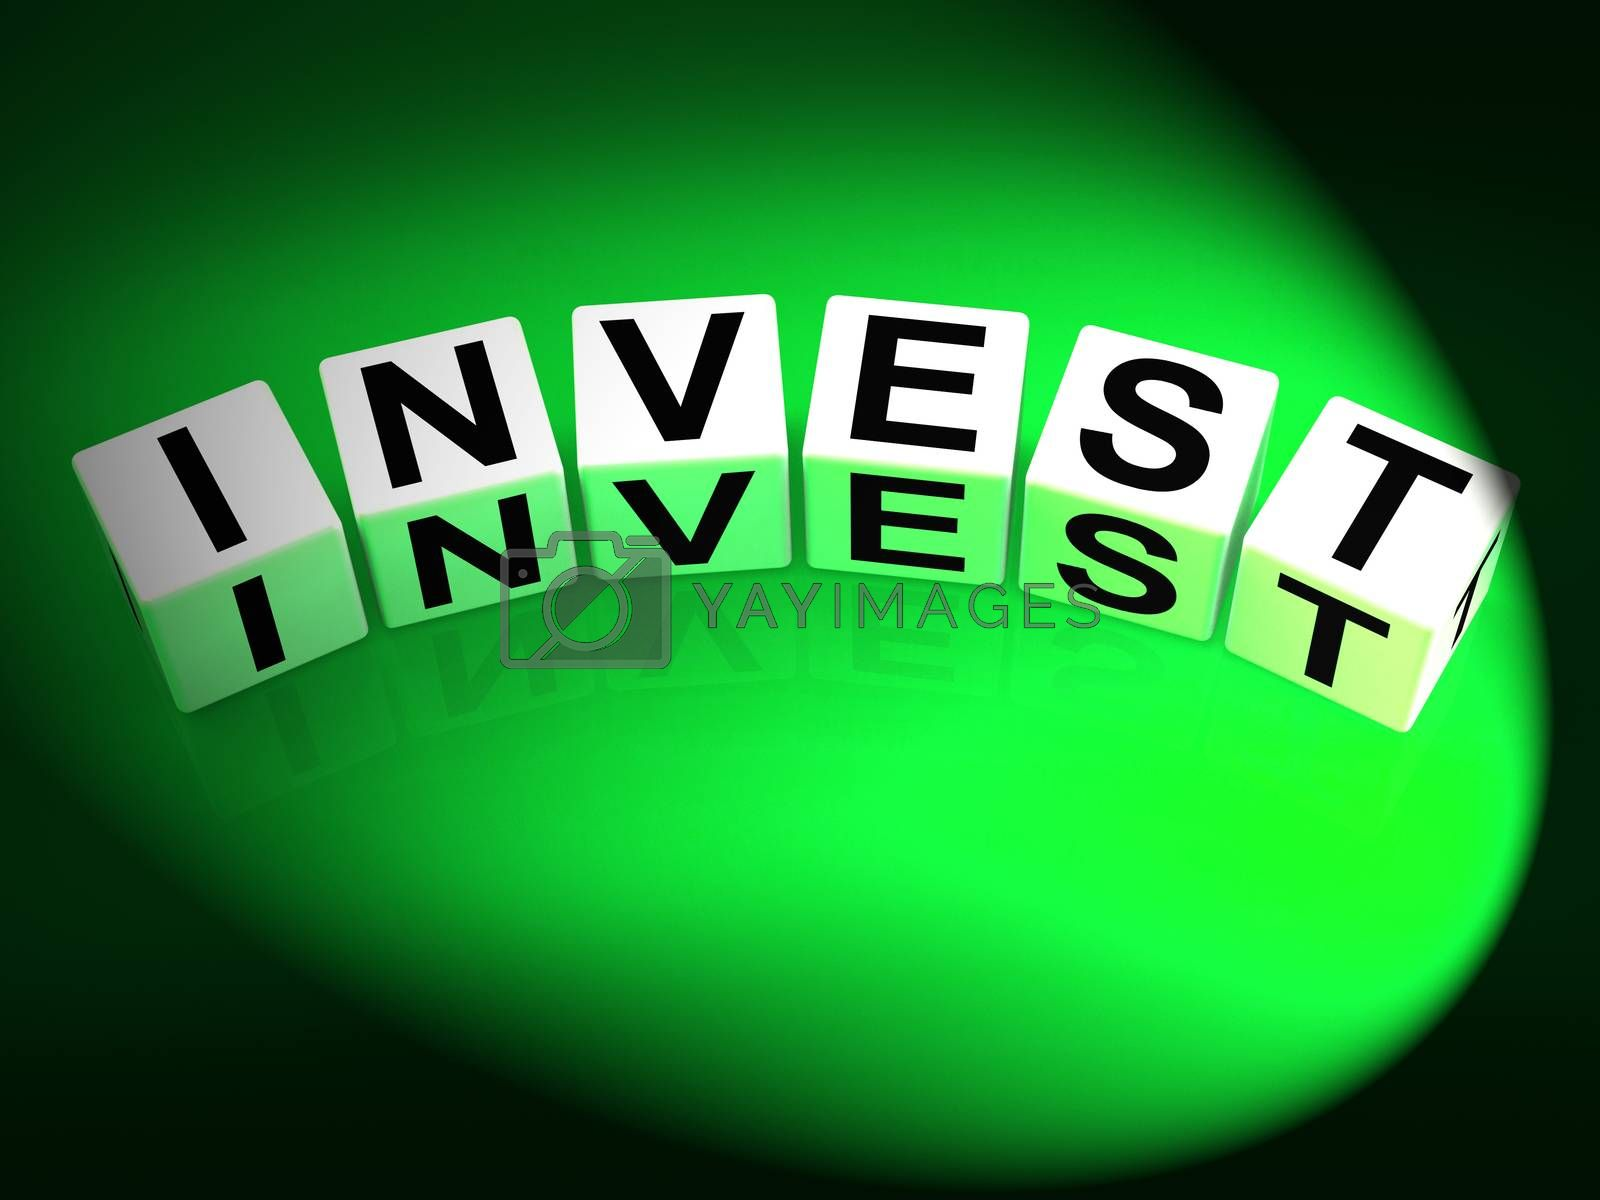 Invest Dice Refer to Investing Loaning or Endowing by stuartmiles